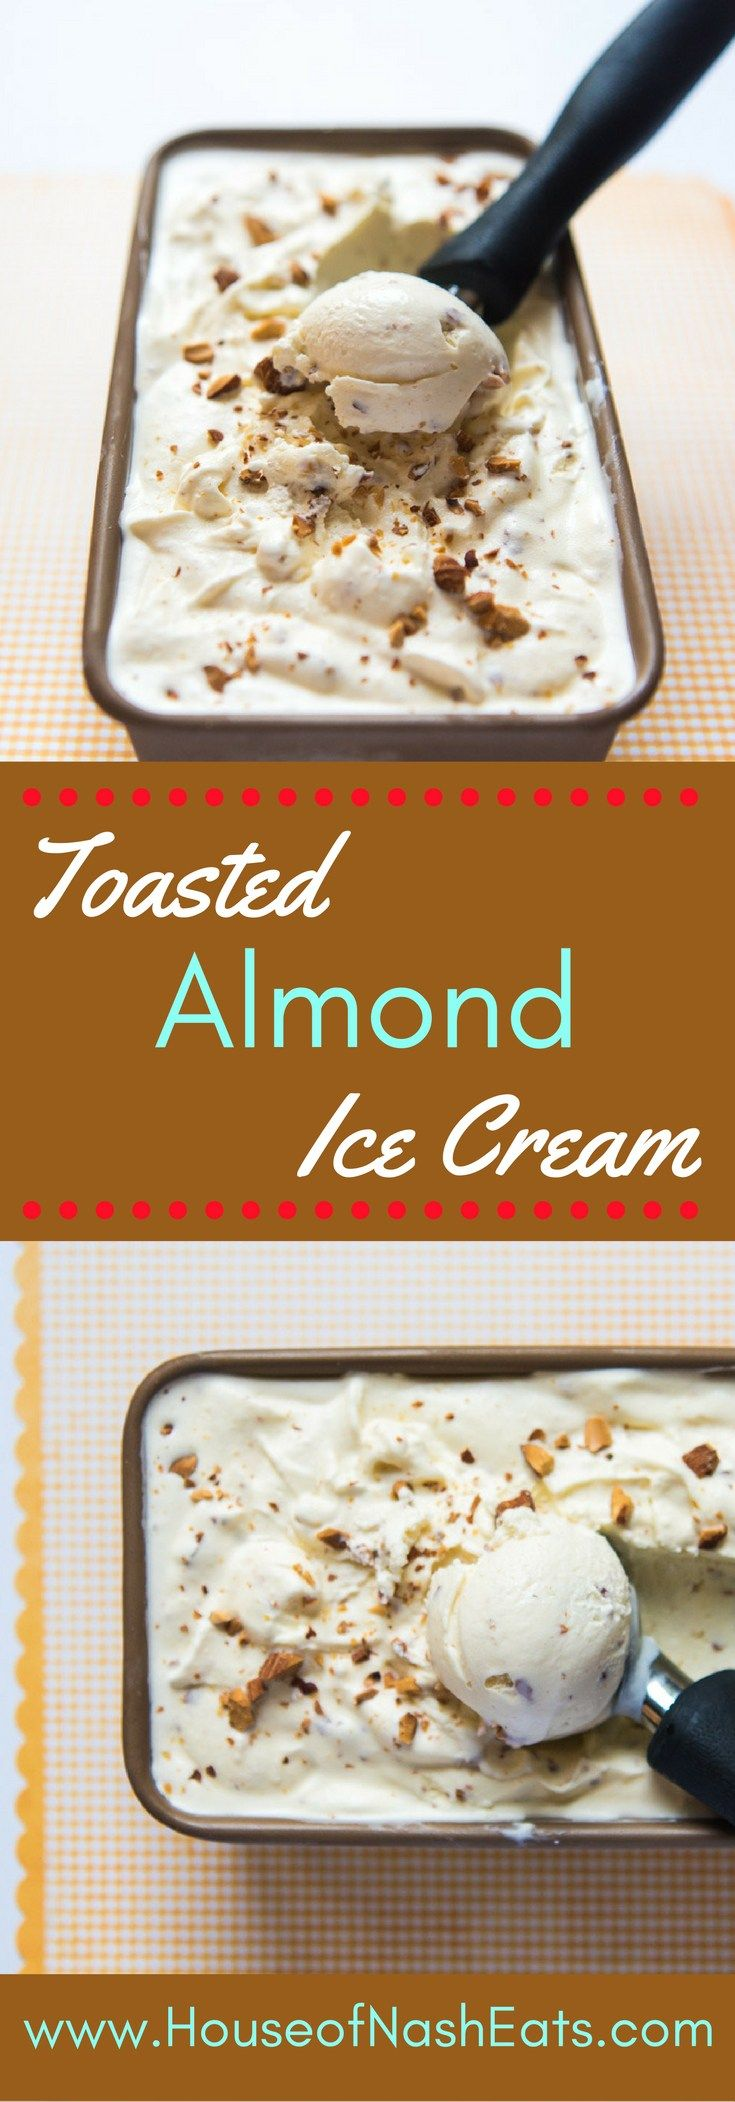 An almond-flavored ice cream chock full of nutty pieces of chopped, toasted…